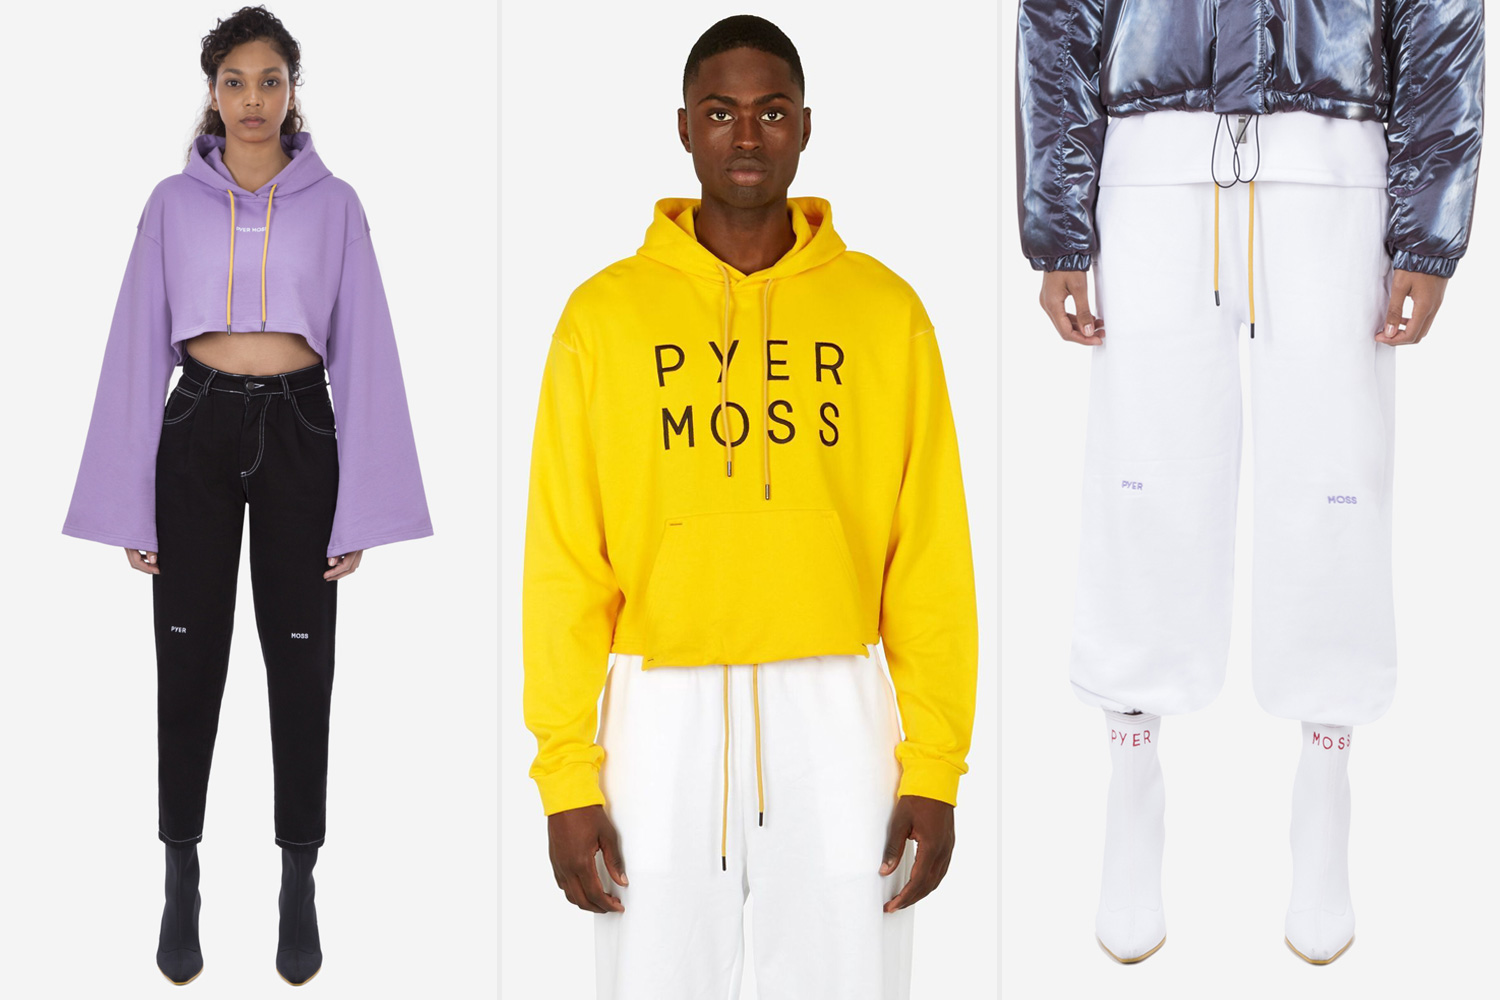 black-owned fashion businesses pyer moss